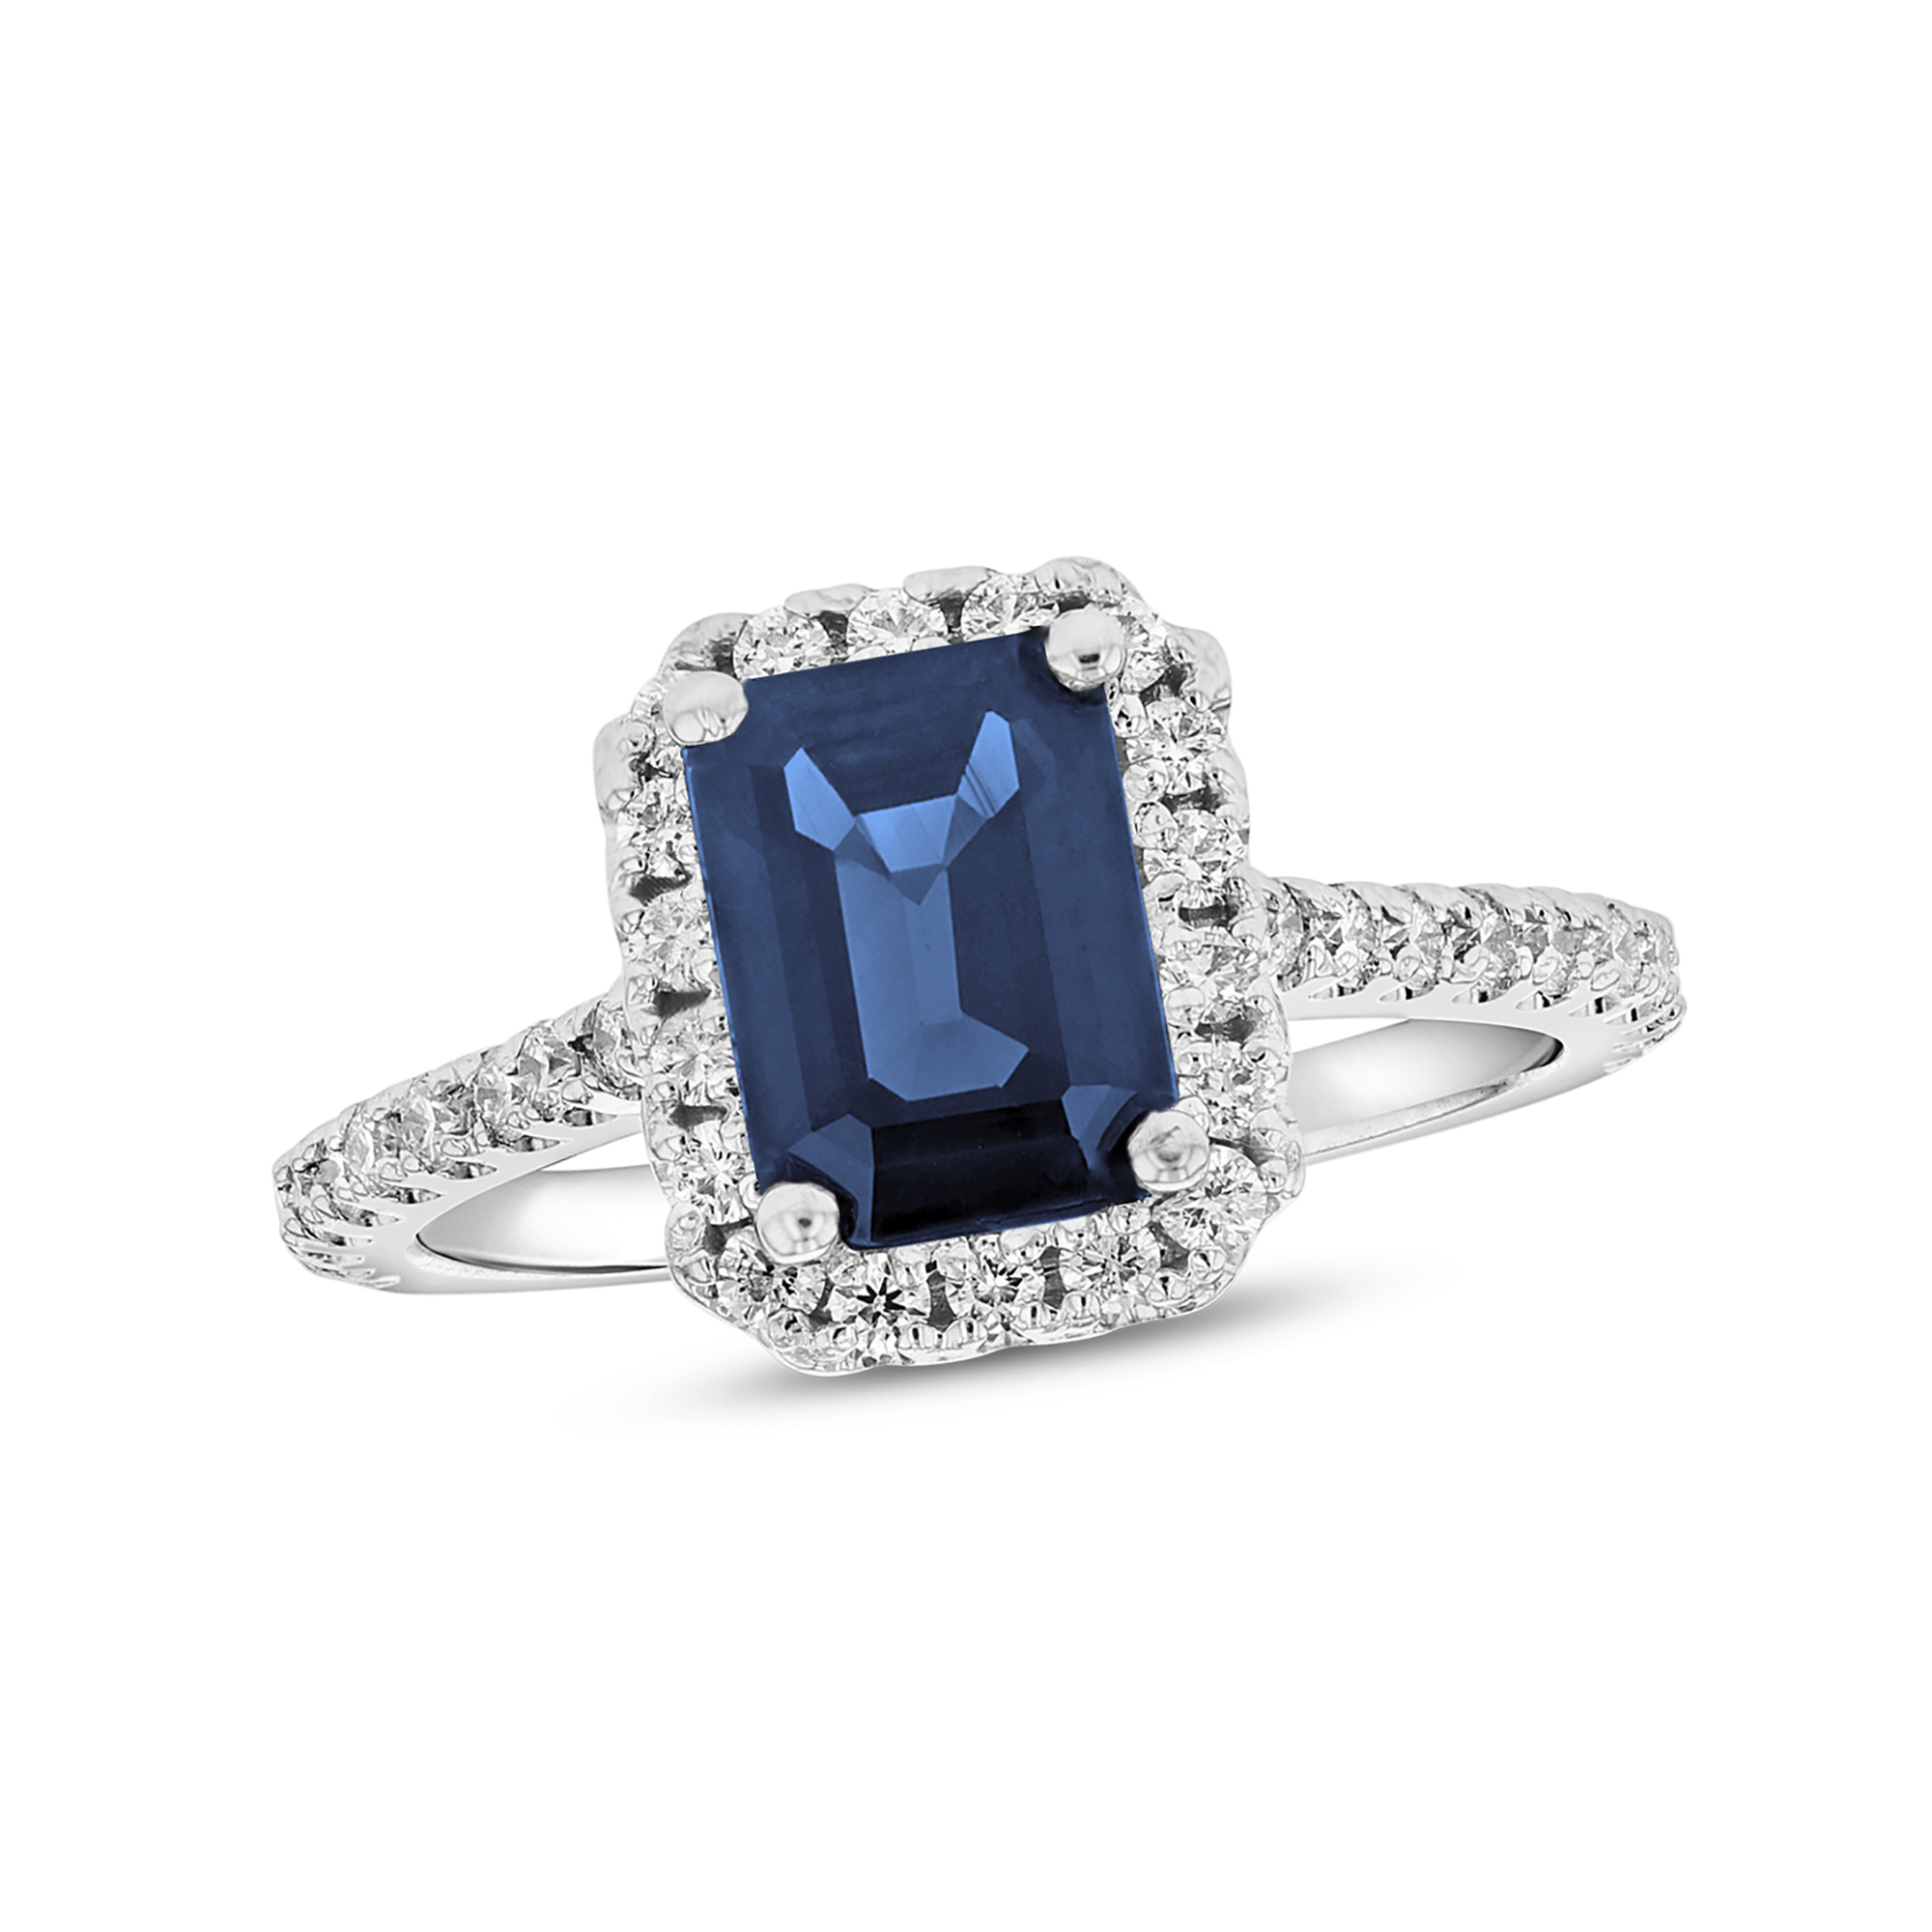 View 2.00ctw Diamond and Emerald Cut Sapphire Statement Ring in 14k White Gold